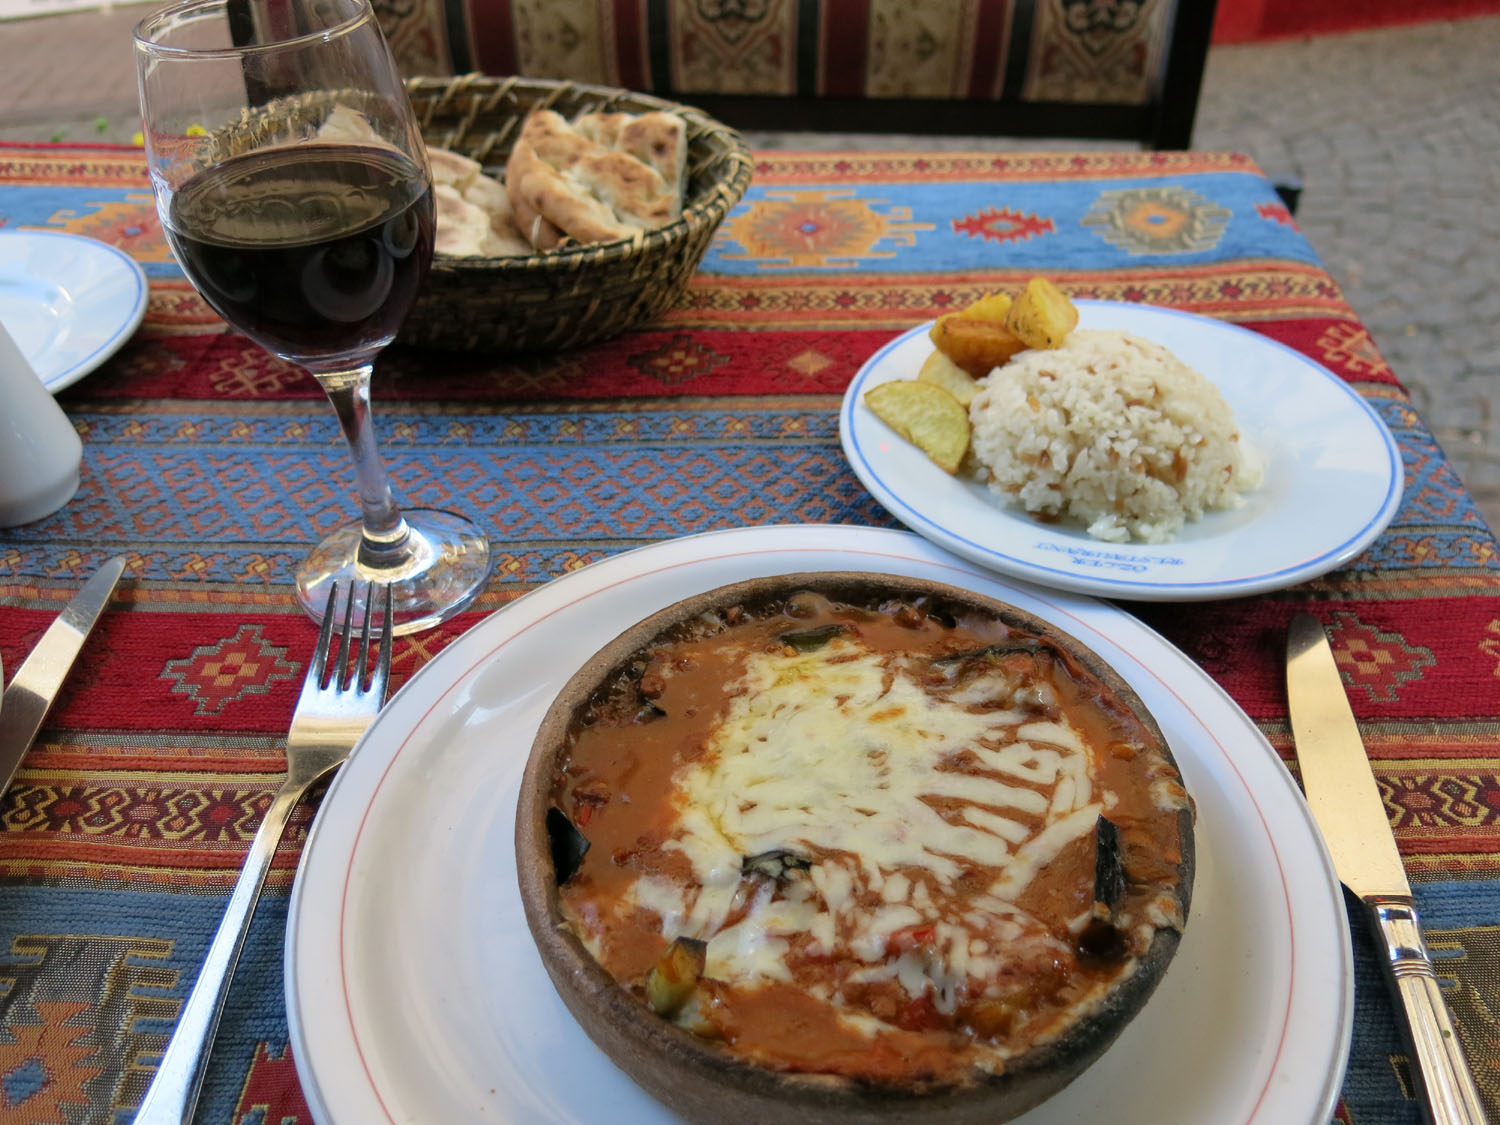 Turkey-Istanbul-Food-And-Drink-Moussaka